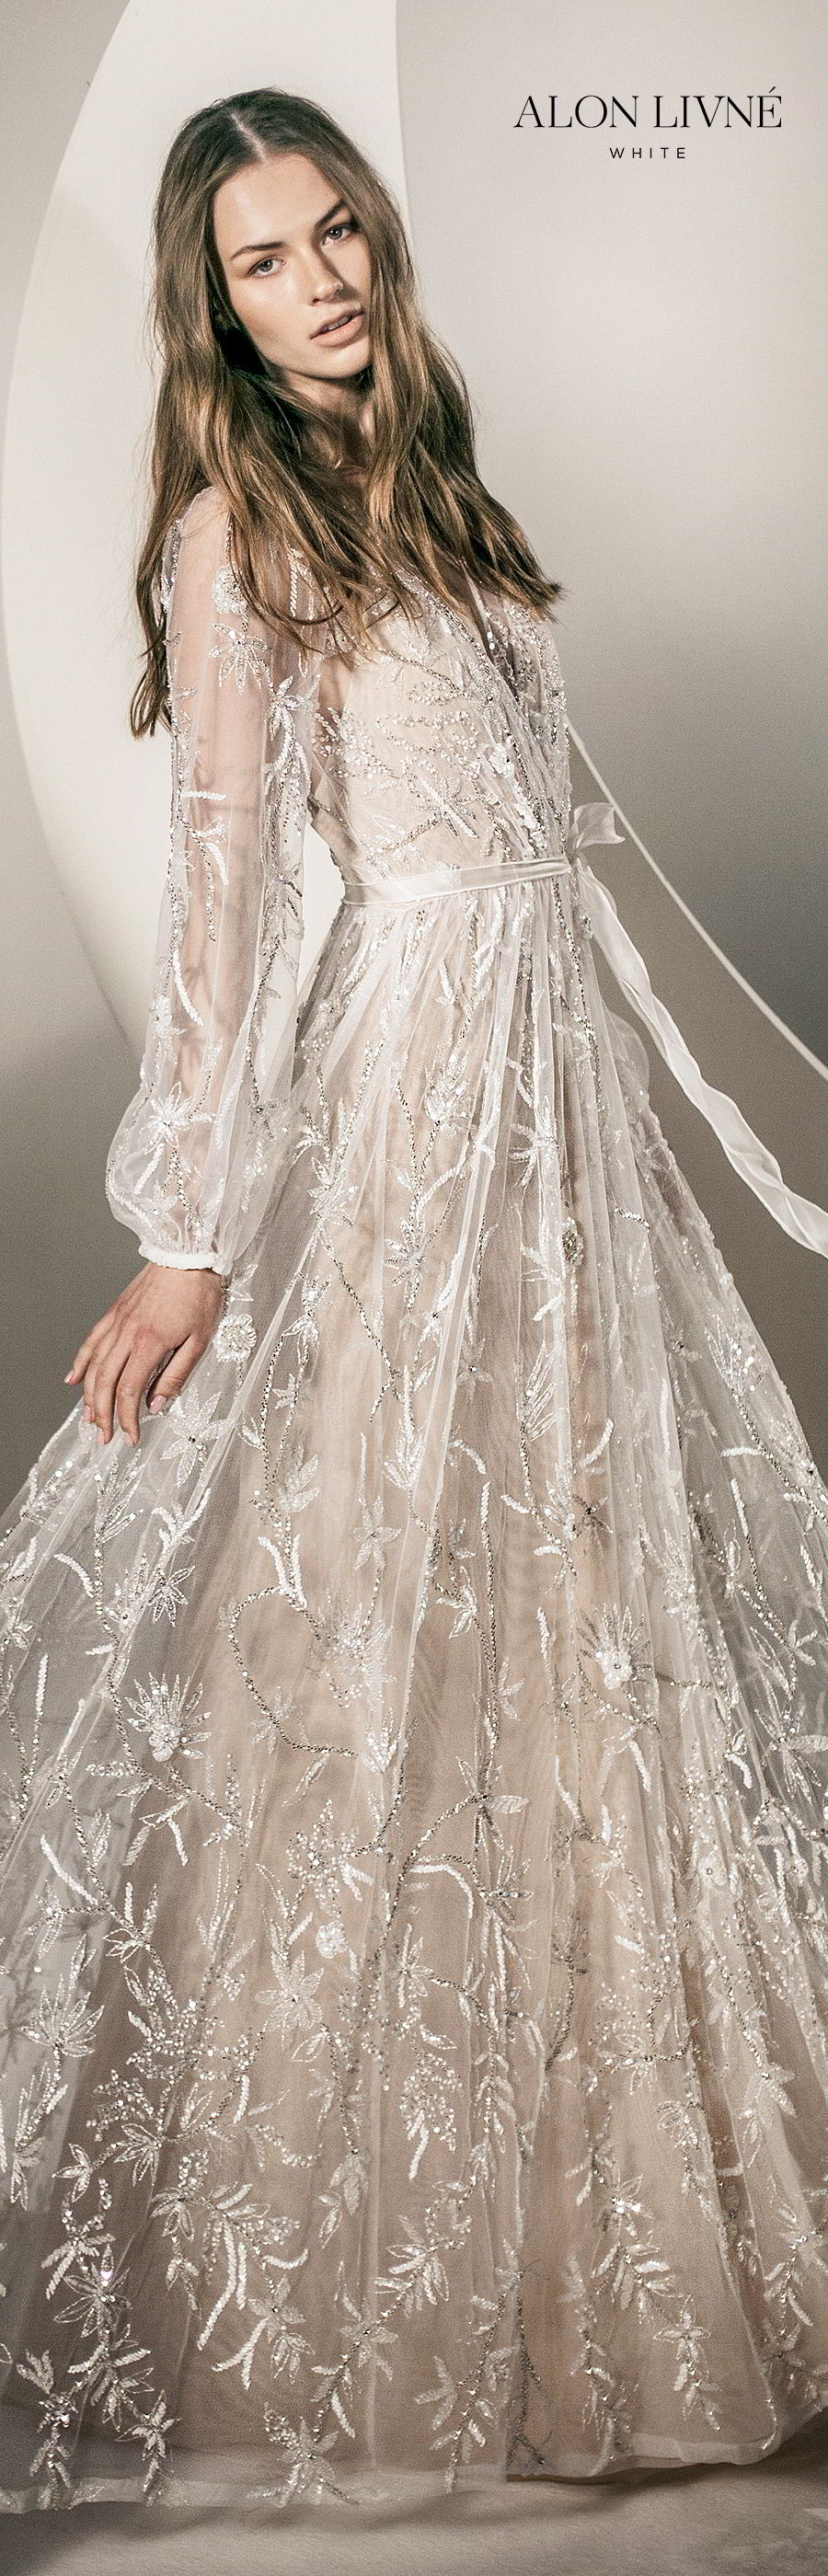 alon livne white spring 2020 bridal illusion long bishop sleeves surplice v neckline fully embellished a line lace wedding dress (natalie) romantic boho chic lv